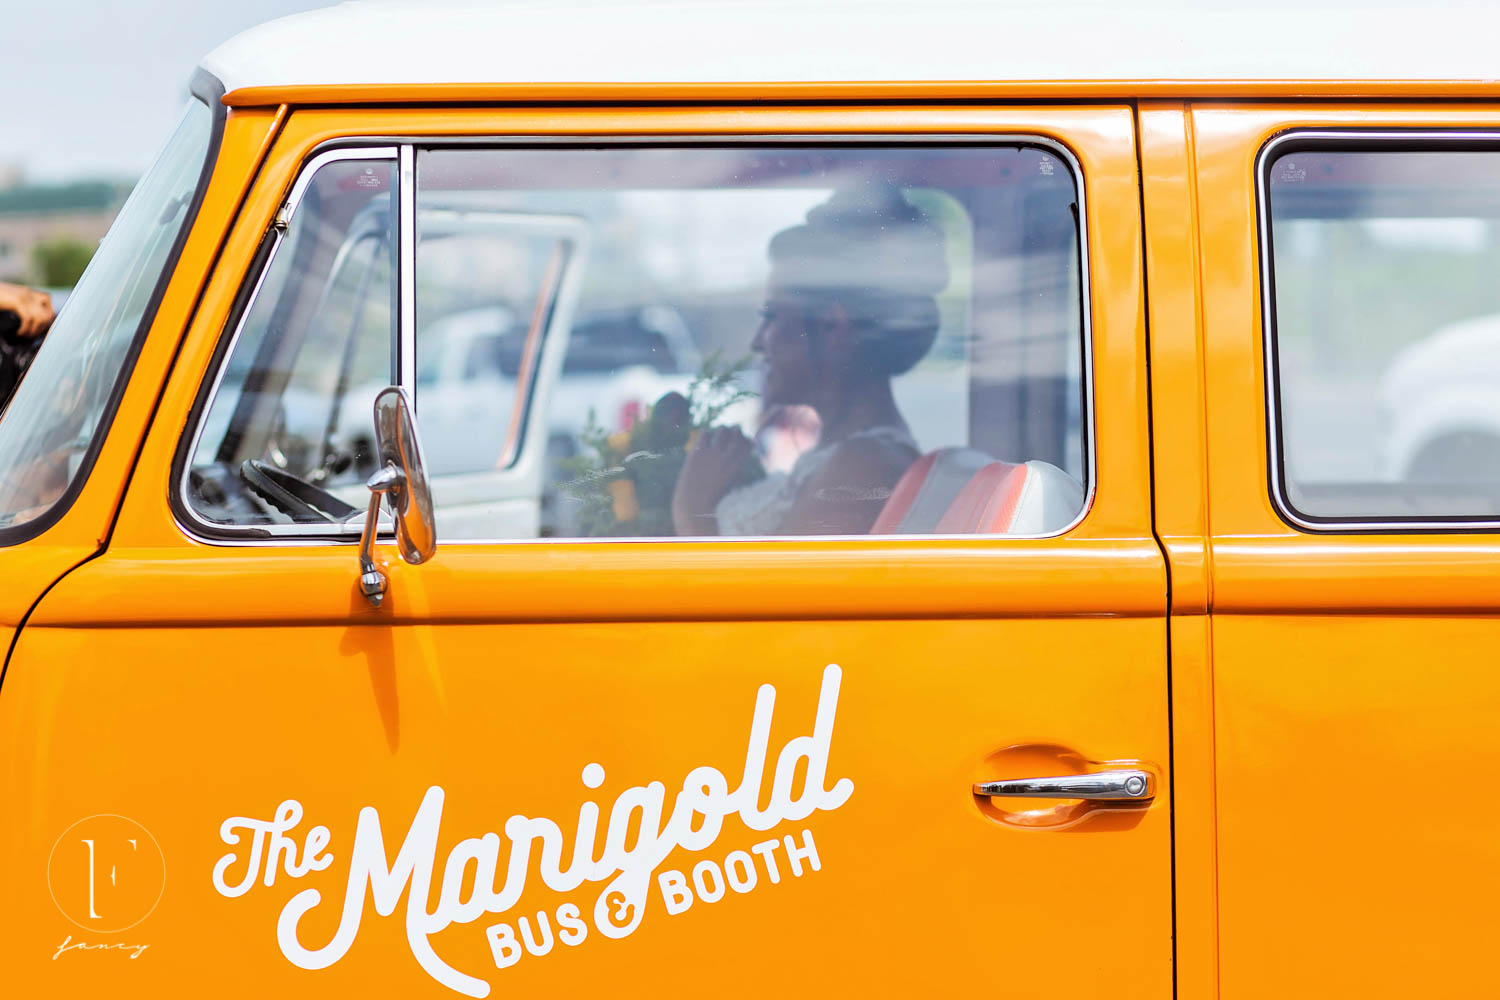 marigold-bus-photobooth-hustle-in-heels-conference-photography-fancy-boudoir-mgm-national-harbor-columbia-trunetta-atwater